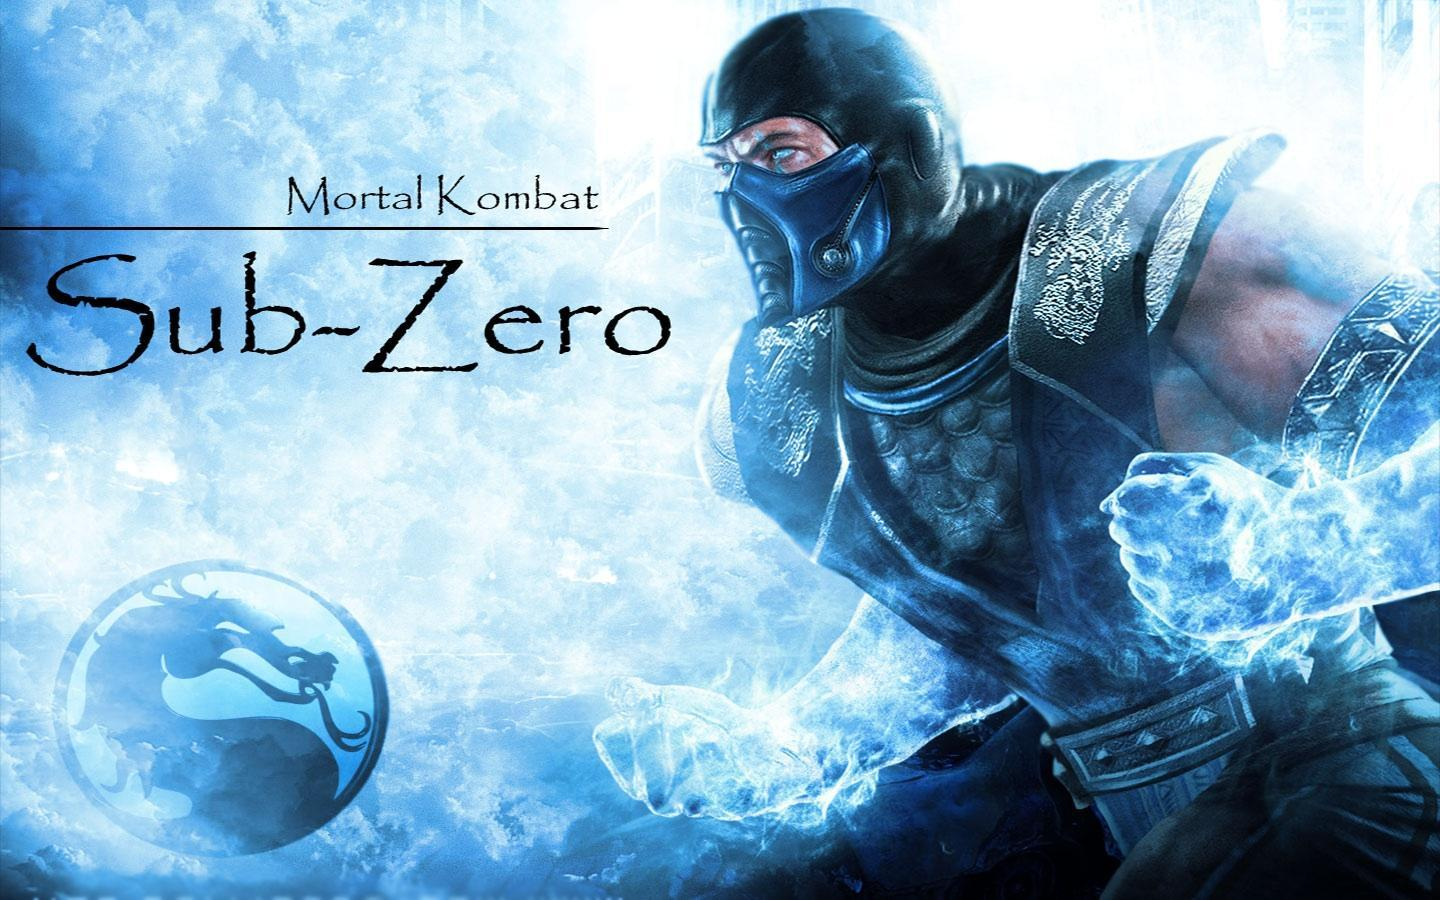 My favorite mortal kombat character is subzero, what about yours?